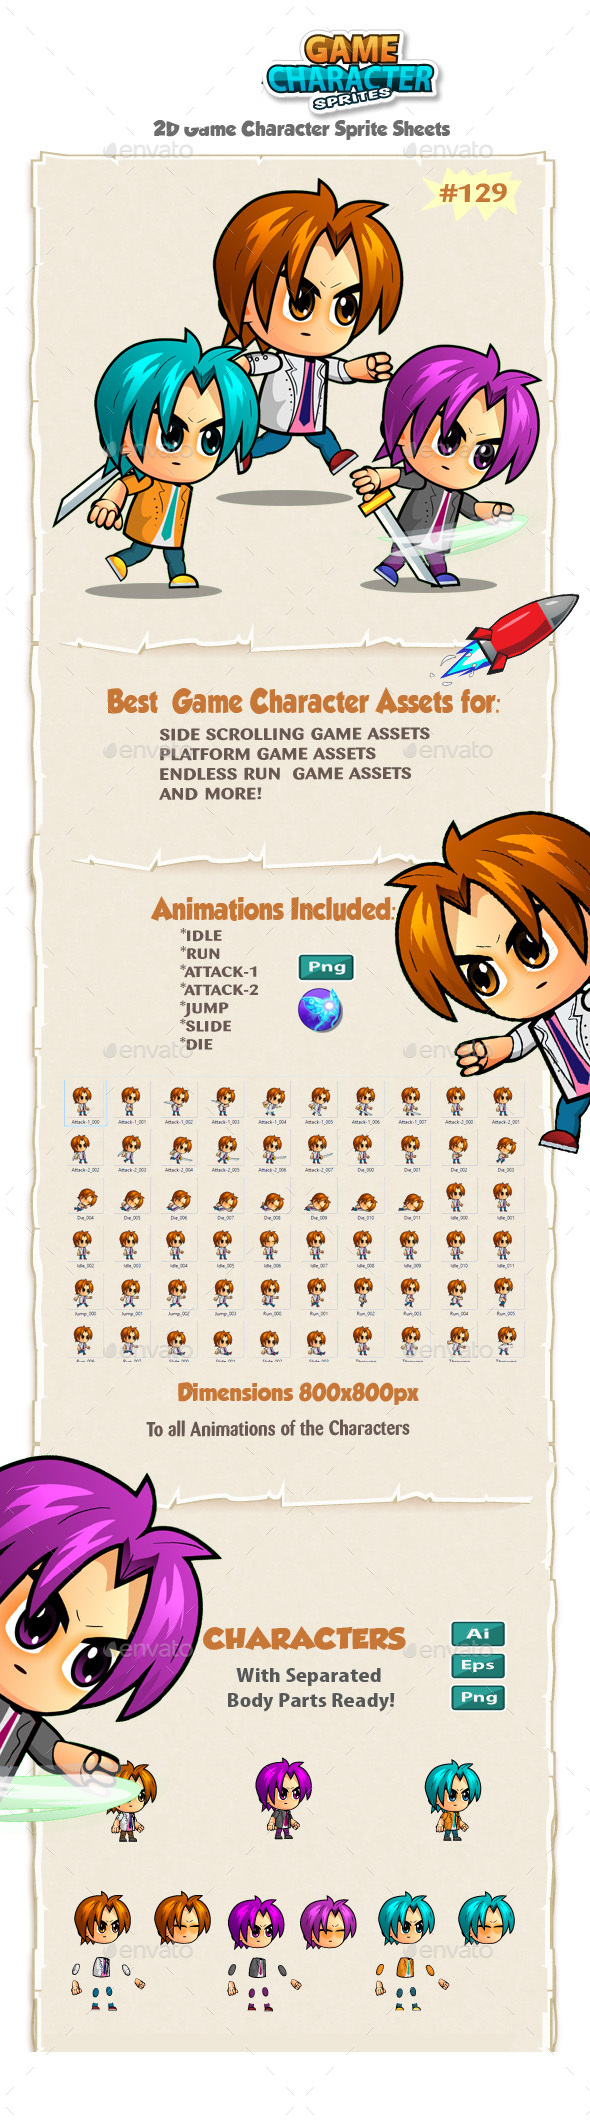 2D Game Character Sprites 129 - Sprites Game Assets